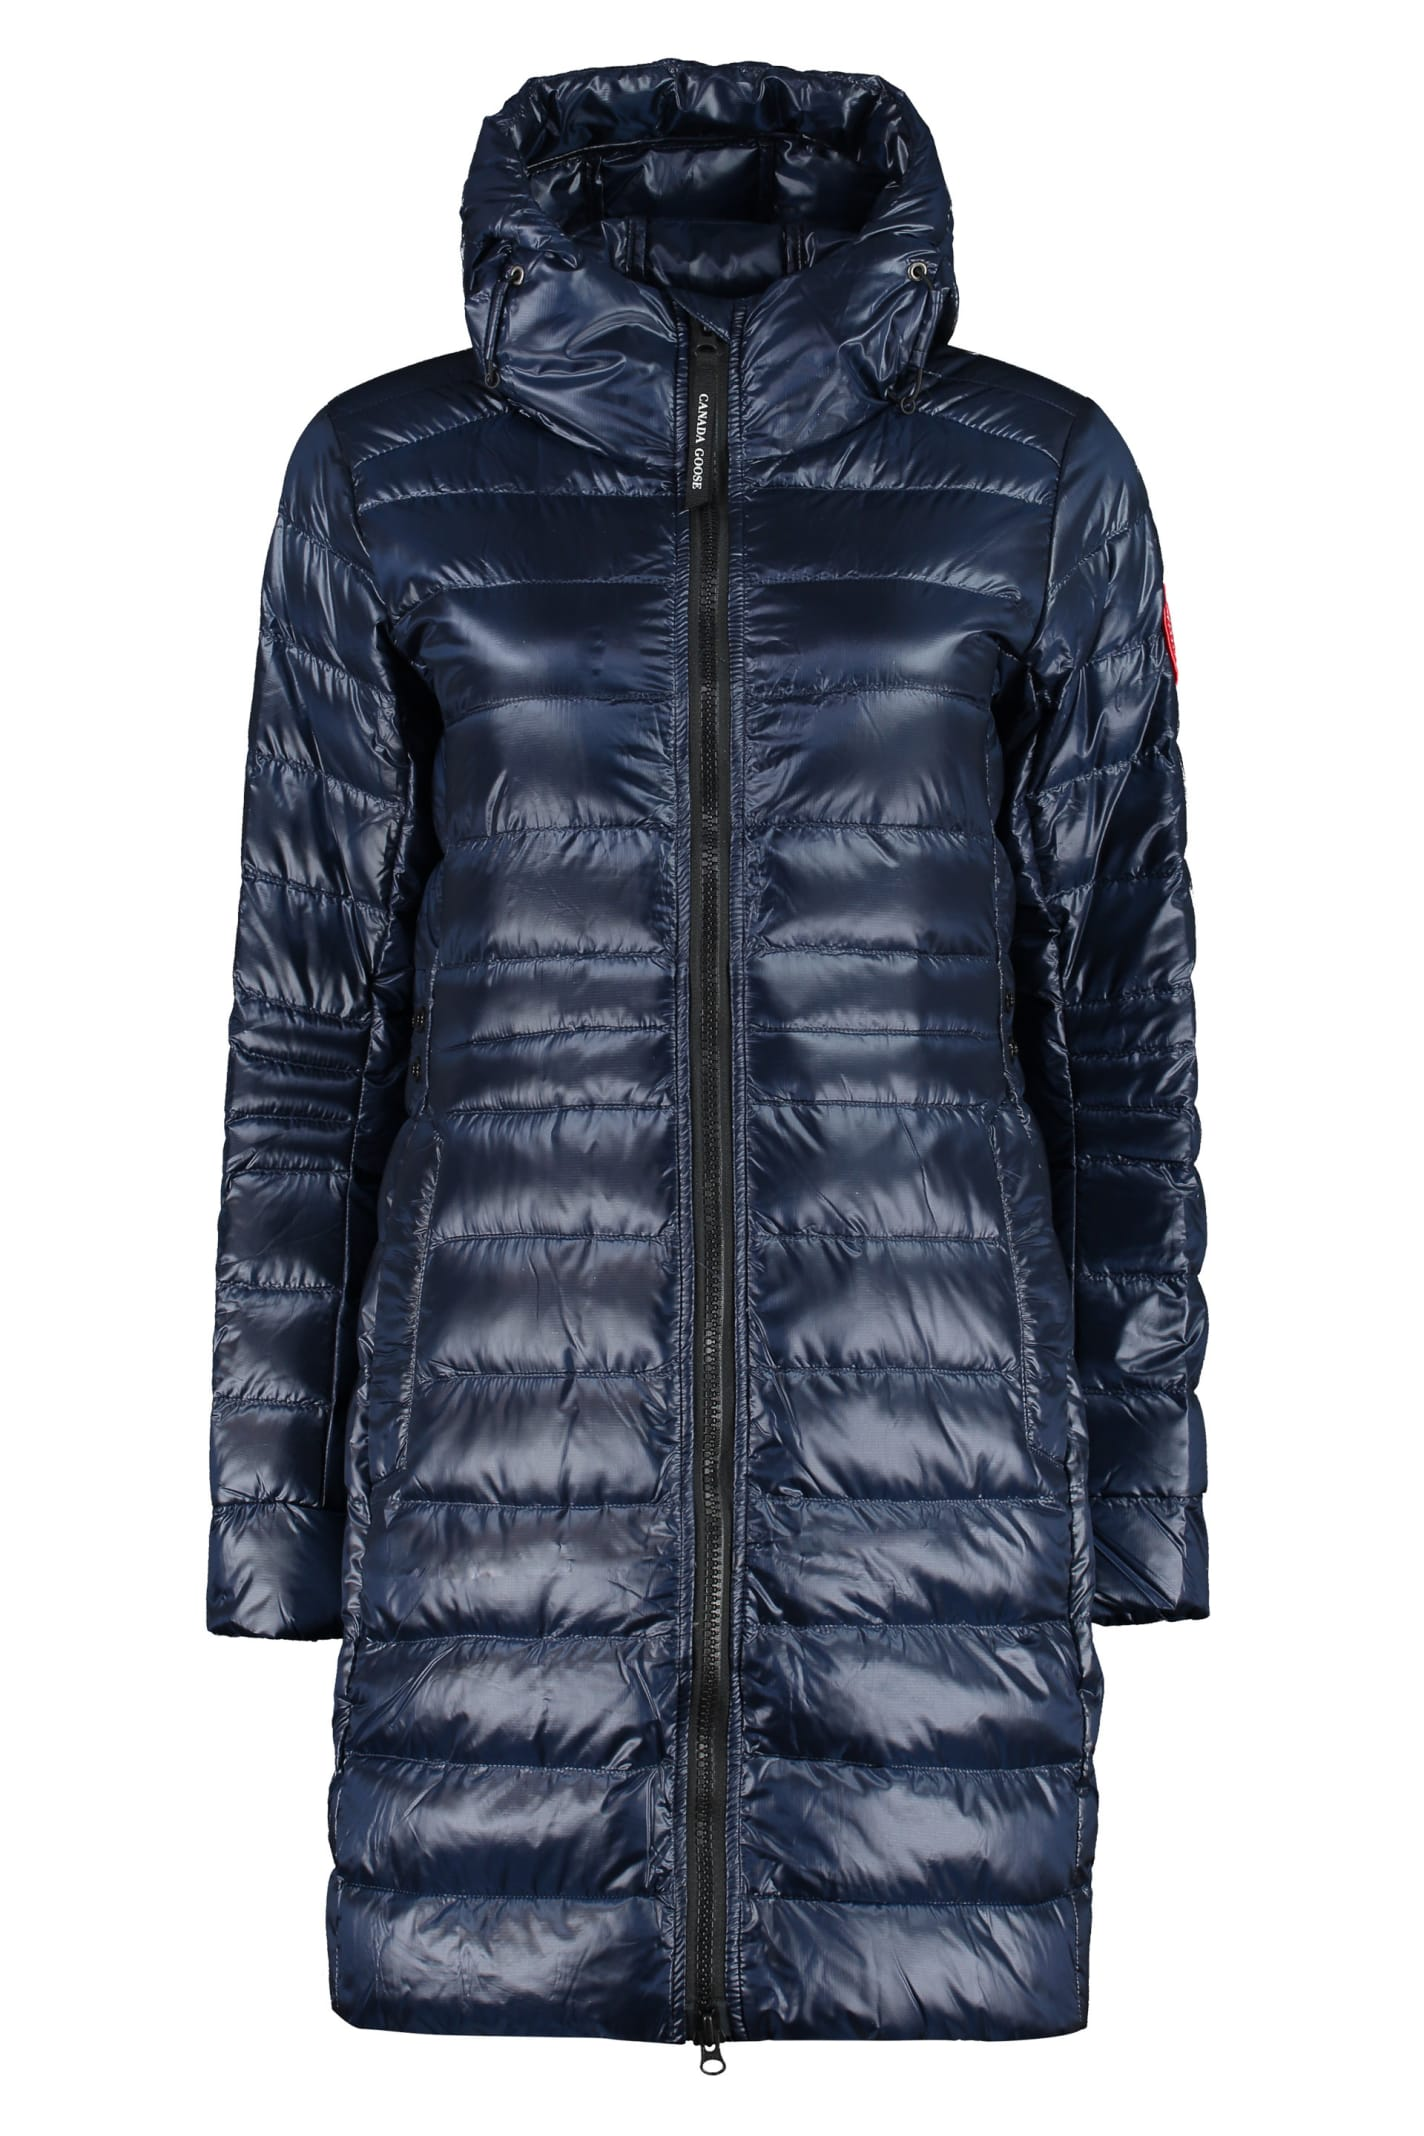 Canada Goose Bomber jackets CYPRESS LONG HOODED DOWN JACKET